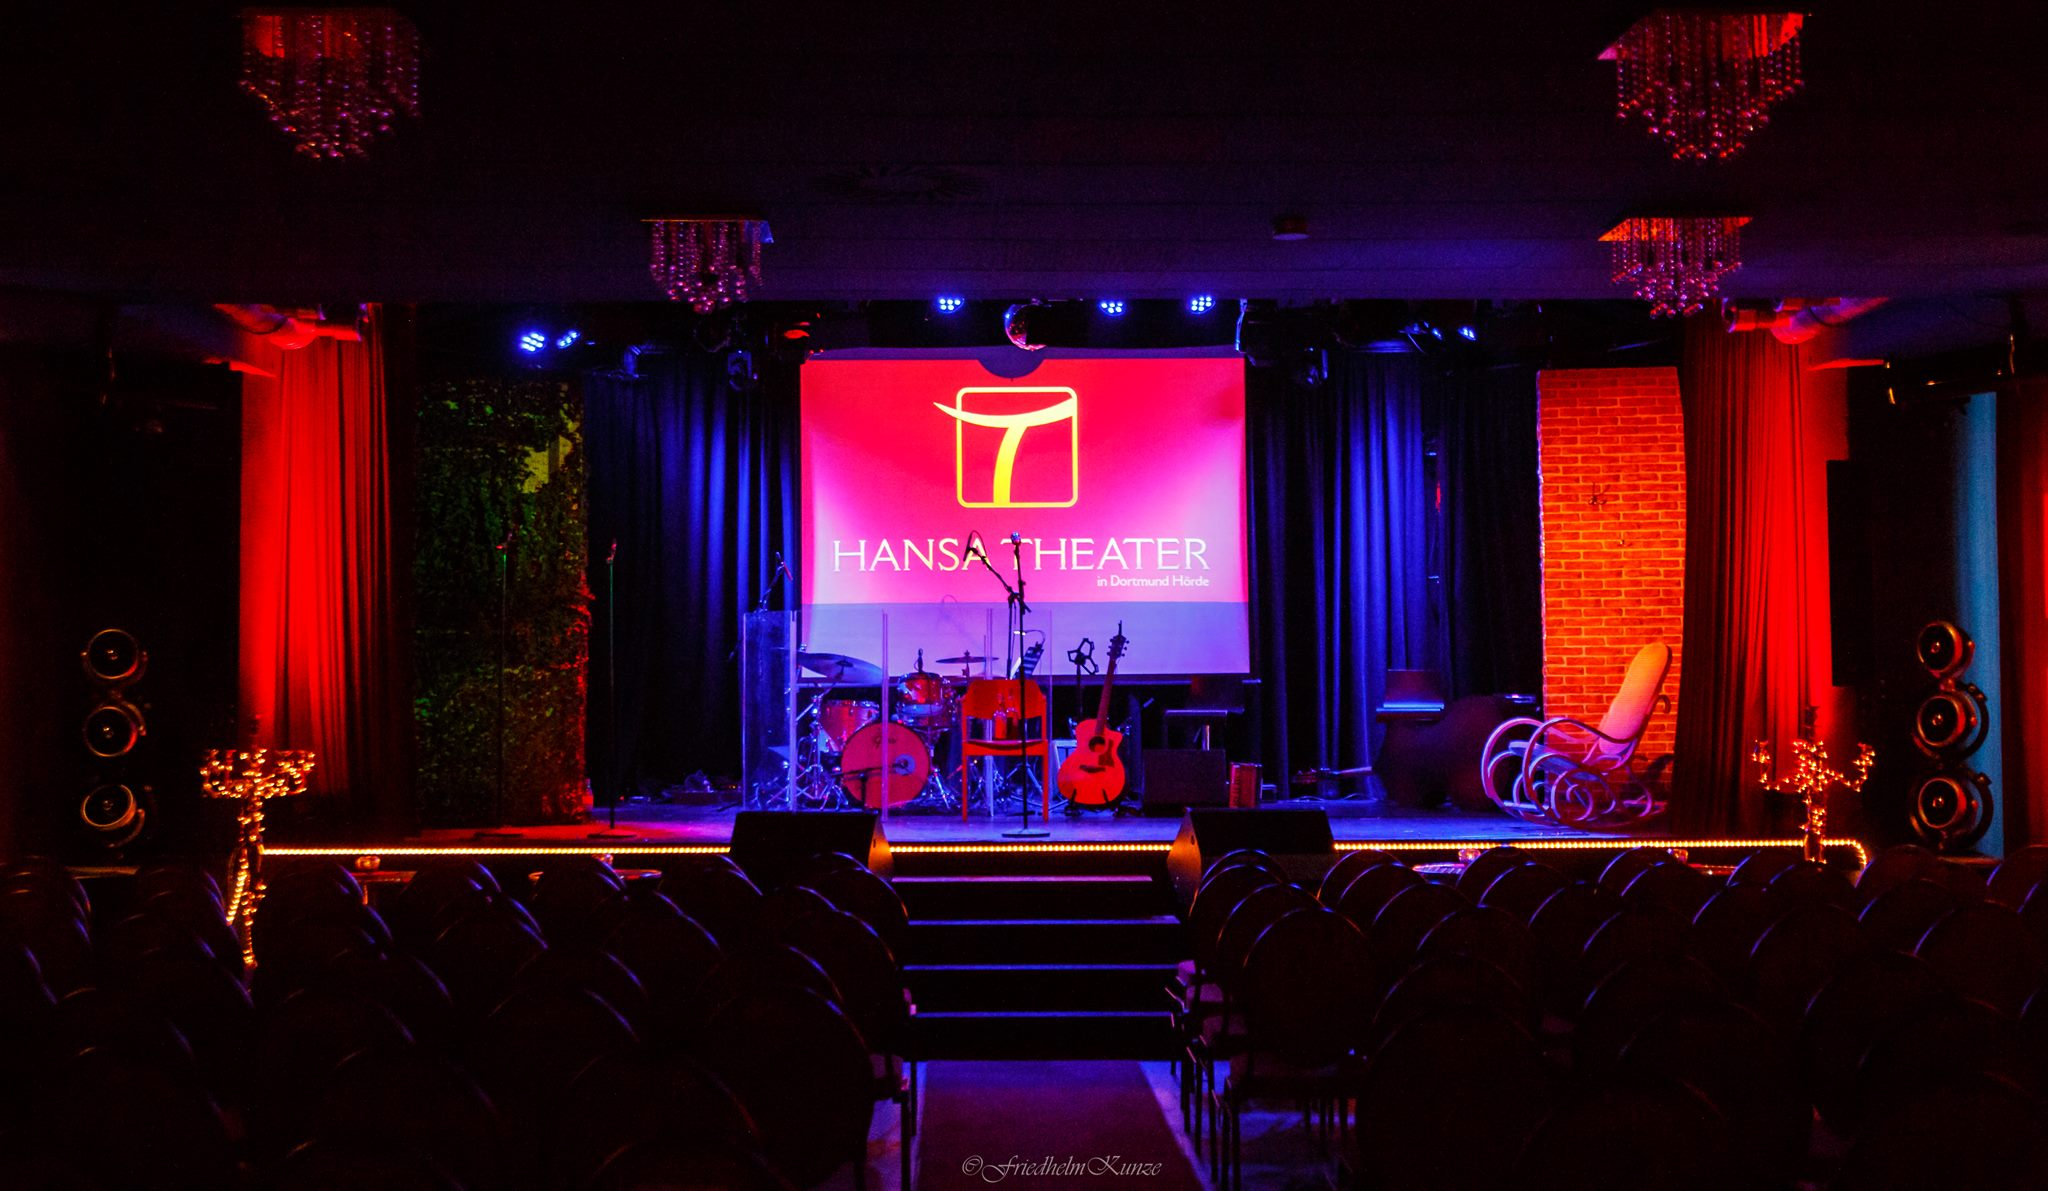 Bar Hocker Theater – Hansa Theater